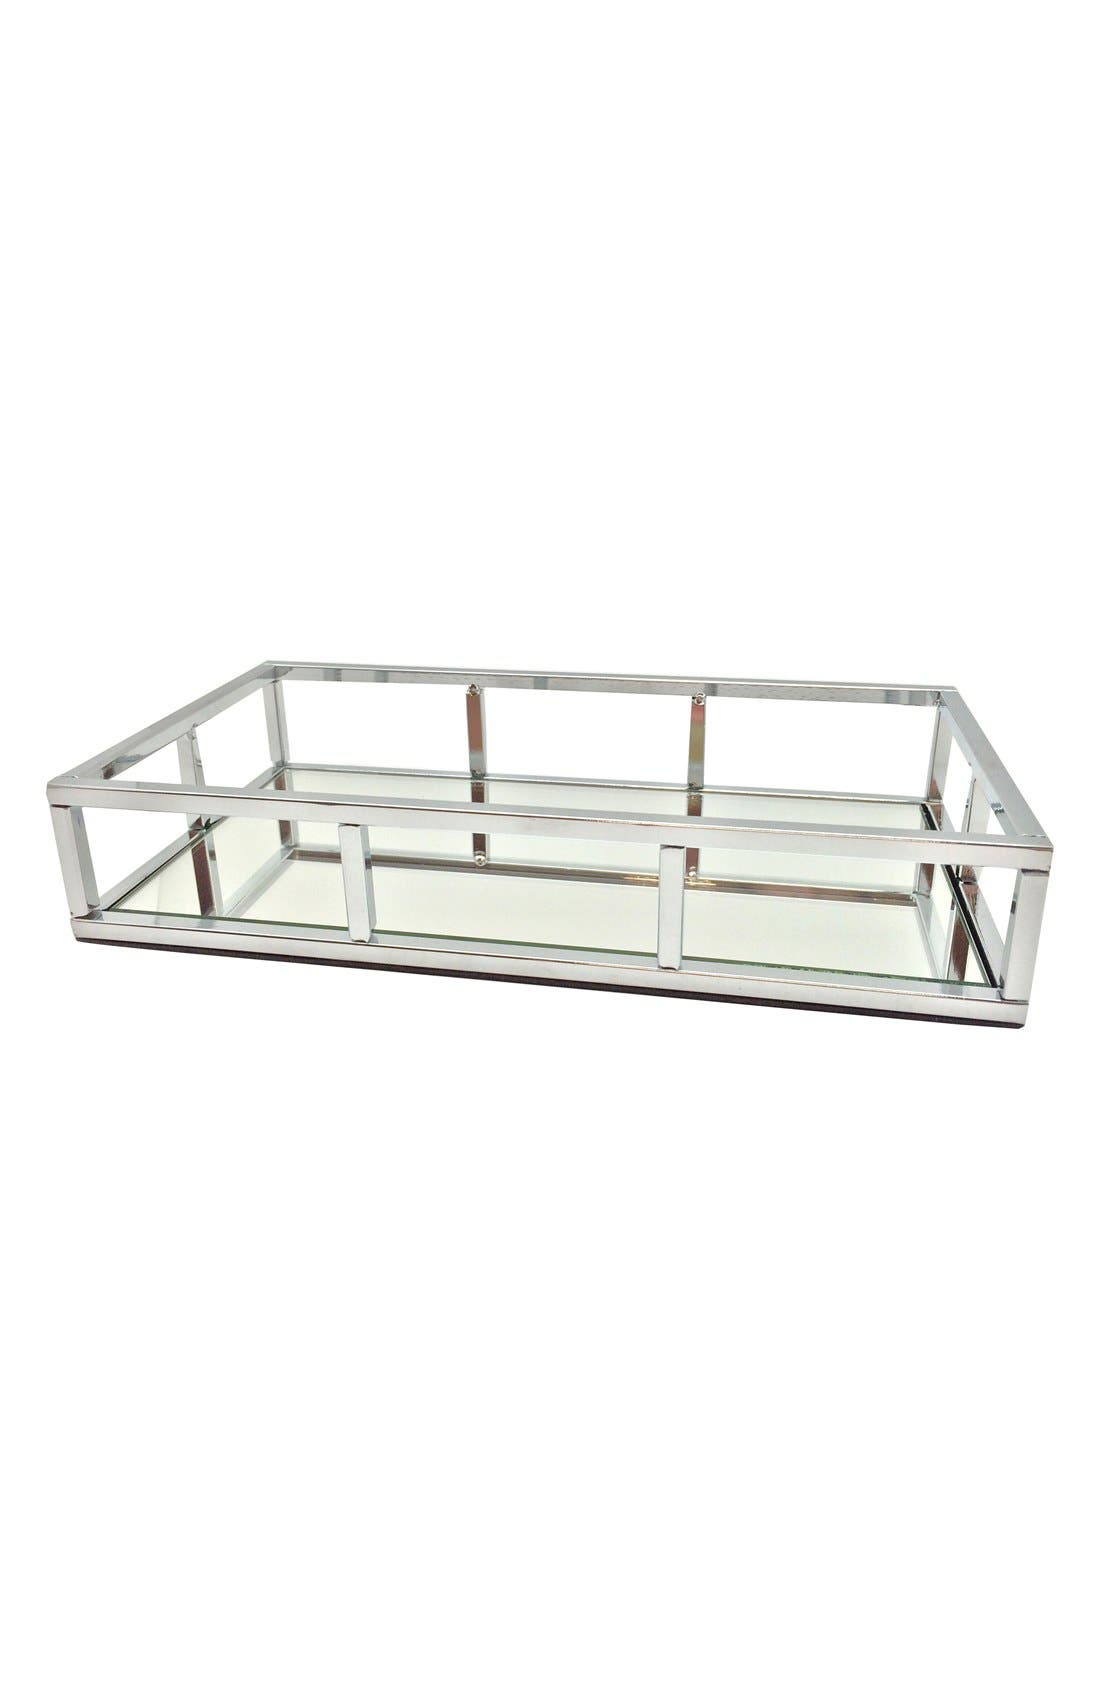 Danielle Creations Chrome Mirror Tray (Nordstrom Exclusive)